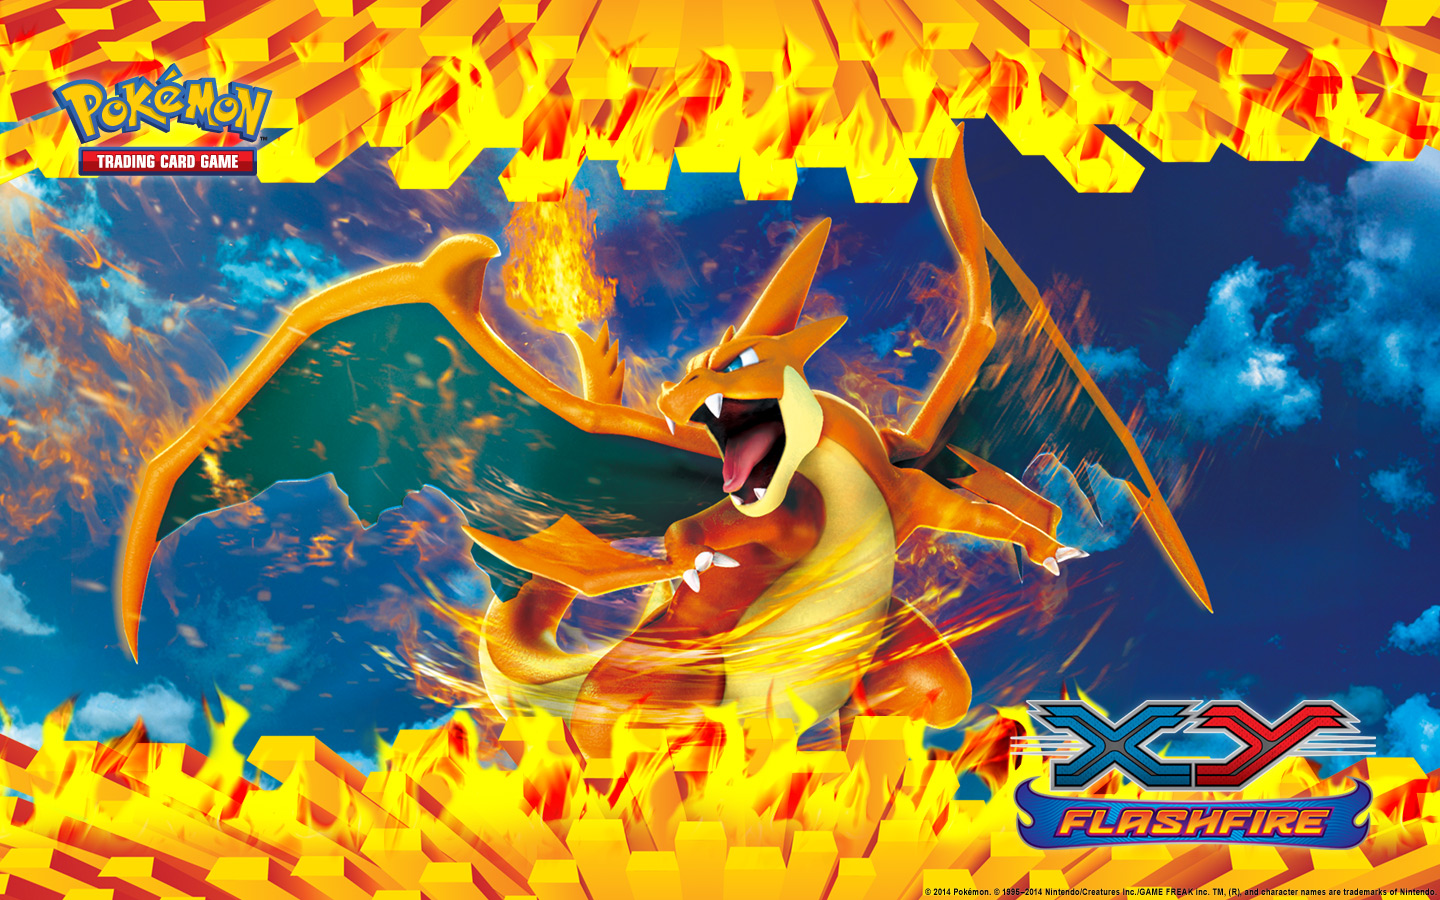 Wallpaper download pokemon - Pok Mon Tcg Xy Flashfire Charizard Wallpaper